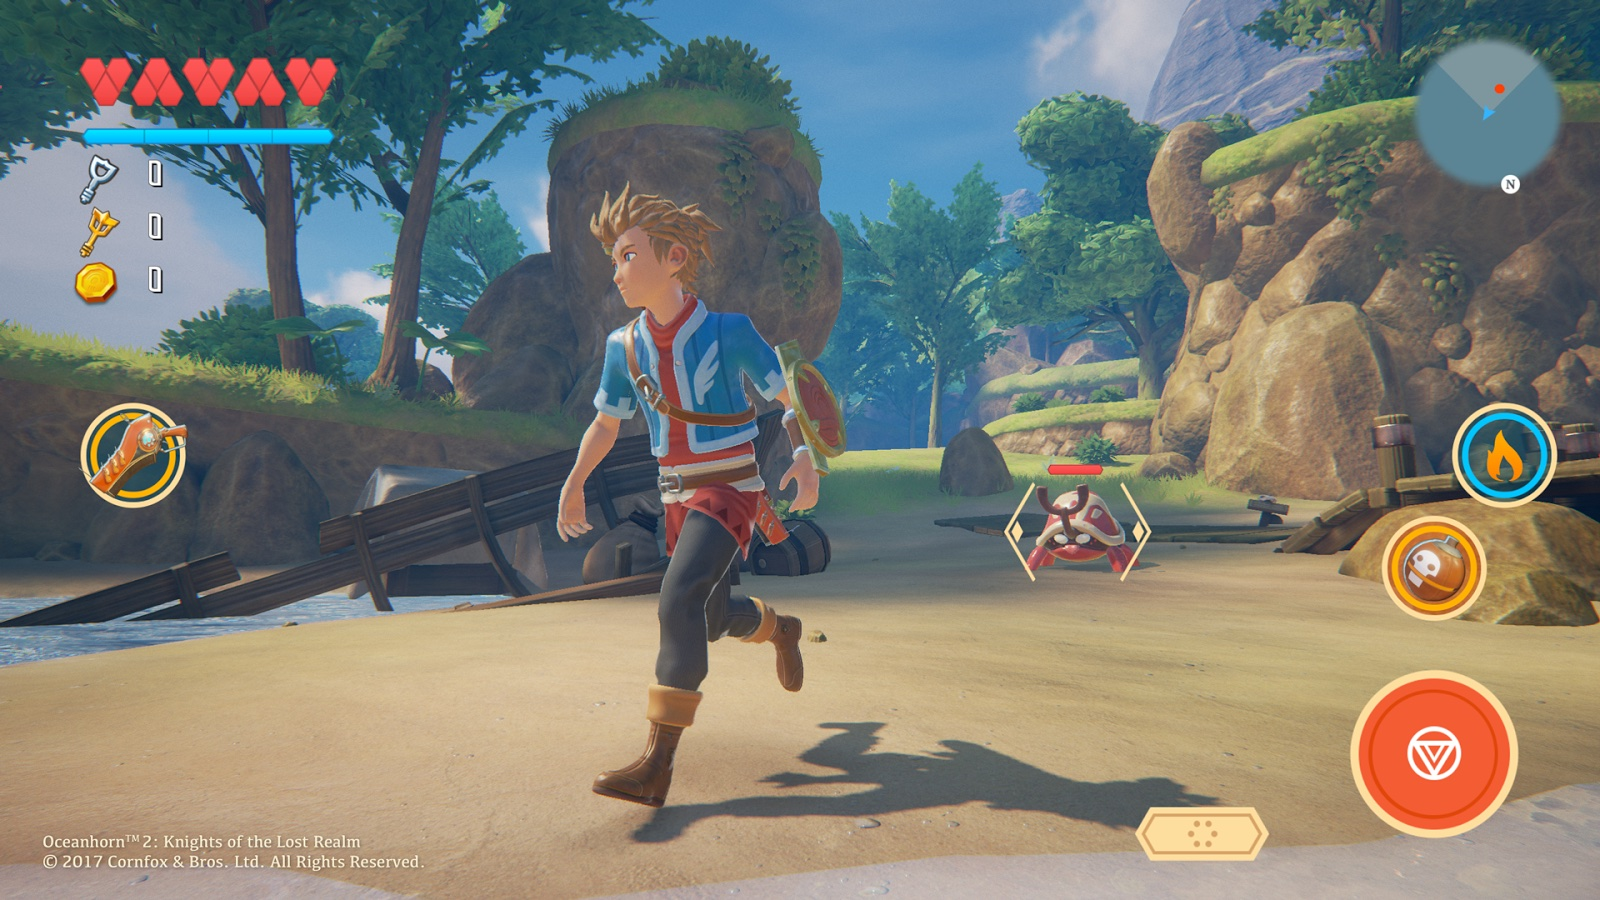 Oceanhorn 2 confirmed to use Unreal 4 engine, first